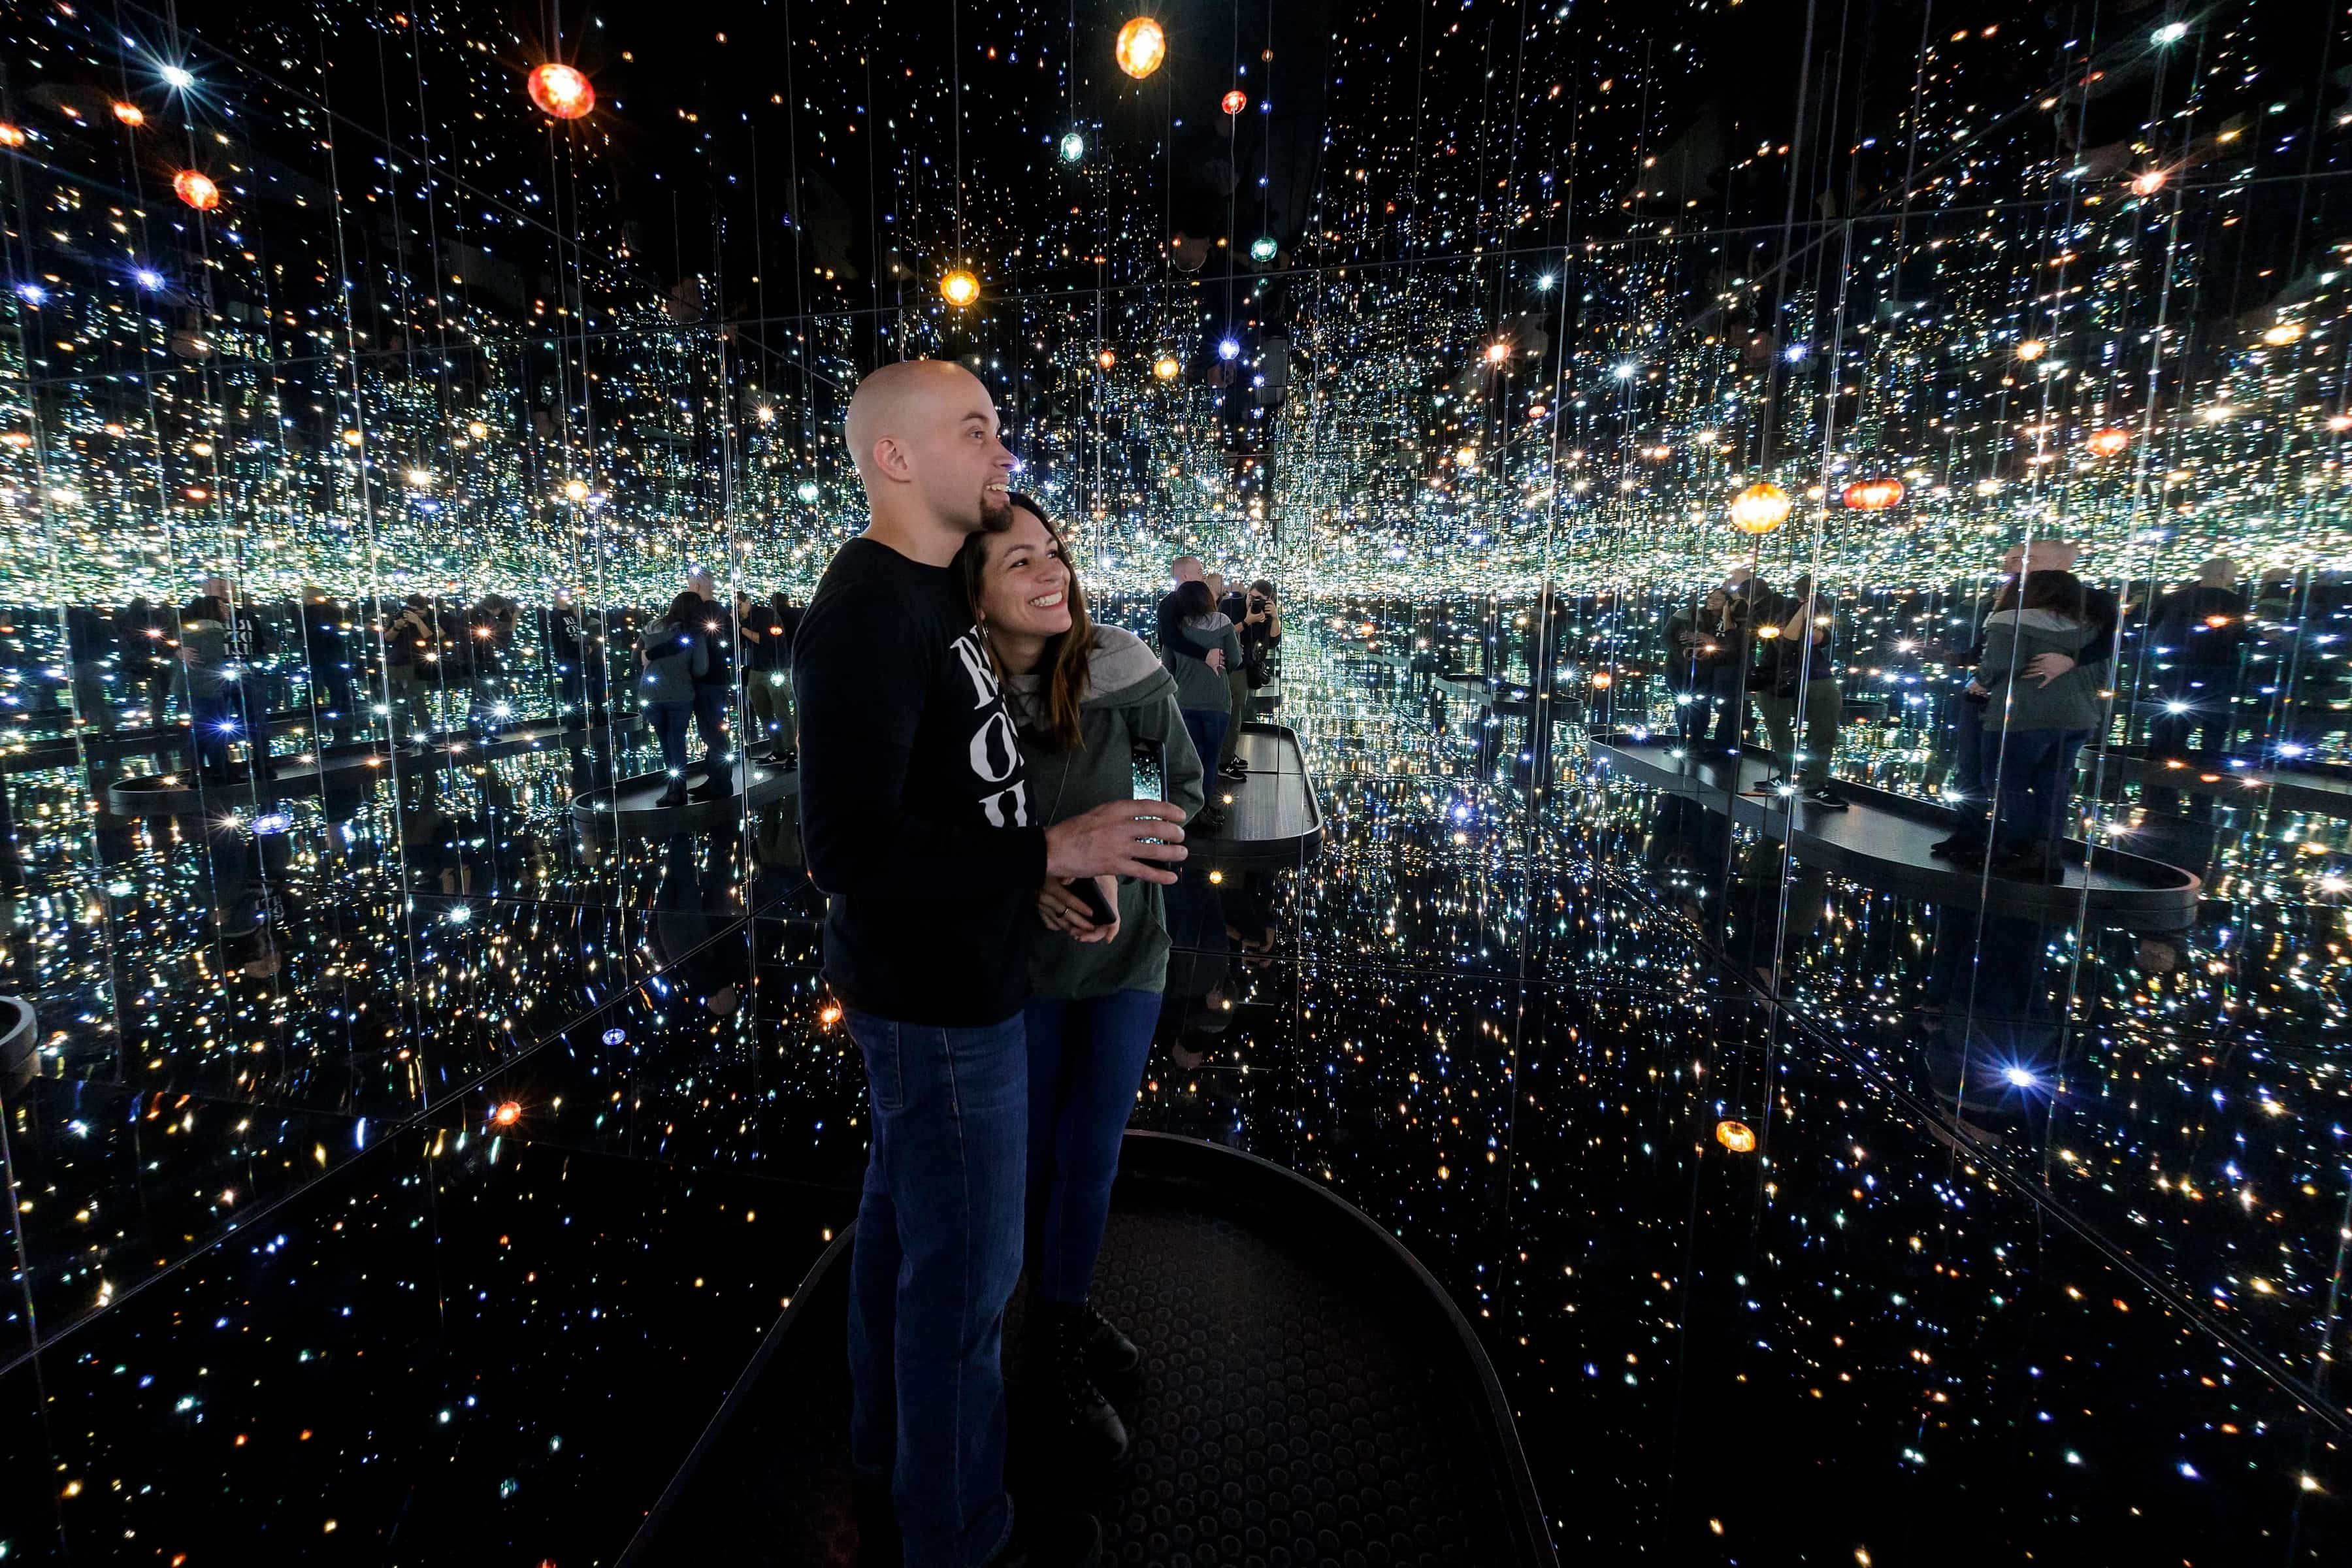 Sarah Iglesias, clinical counseling psychology graduate student, and her husband Brian admire one of the Infinity Mirror Rooms at the High Museum of Art in Atlanta. (AJ Reynolds/Brenau University)